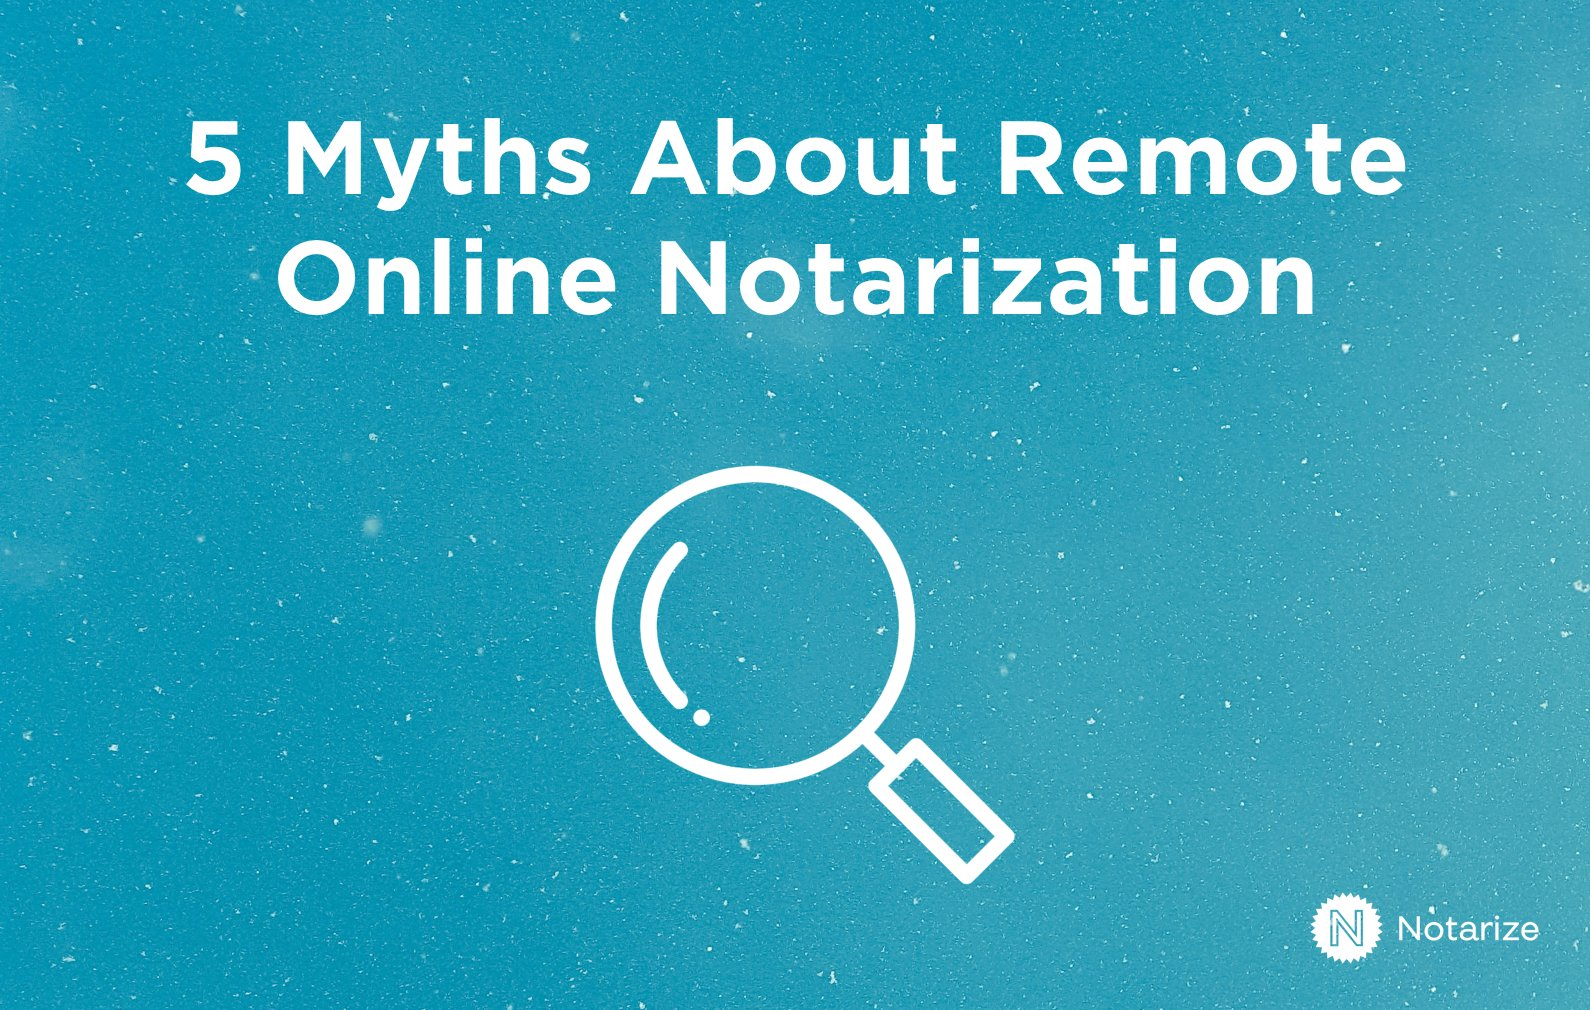 5 Myths About Remote Online Notarization